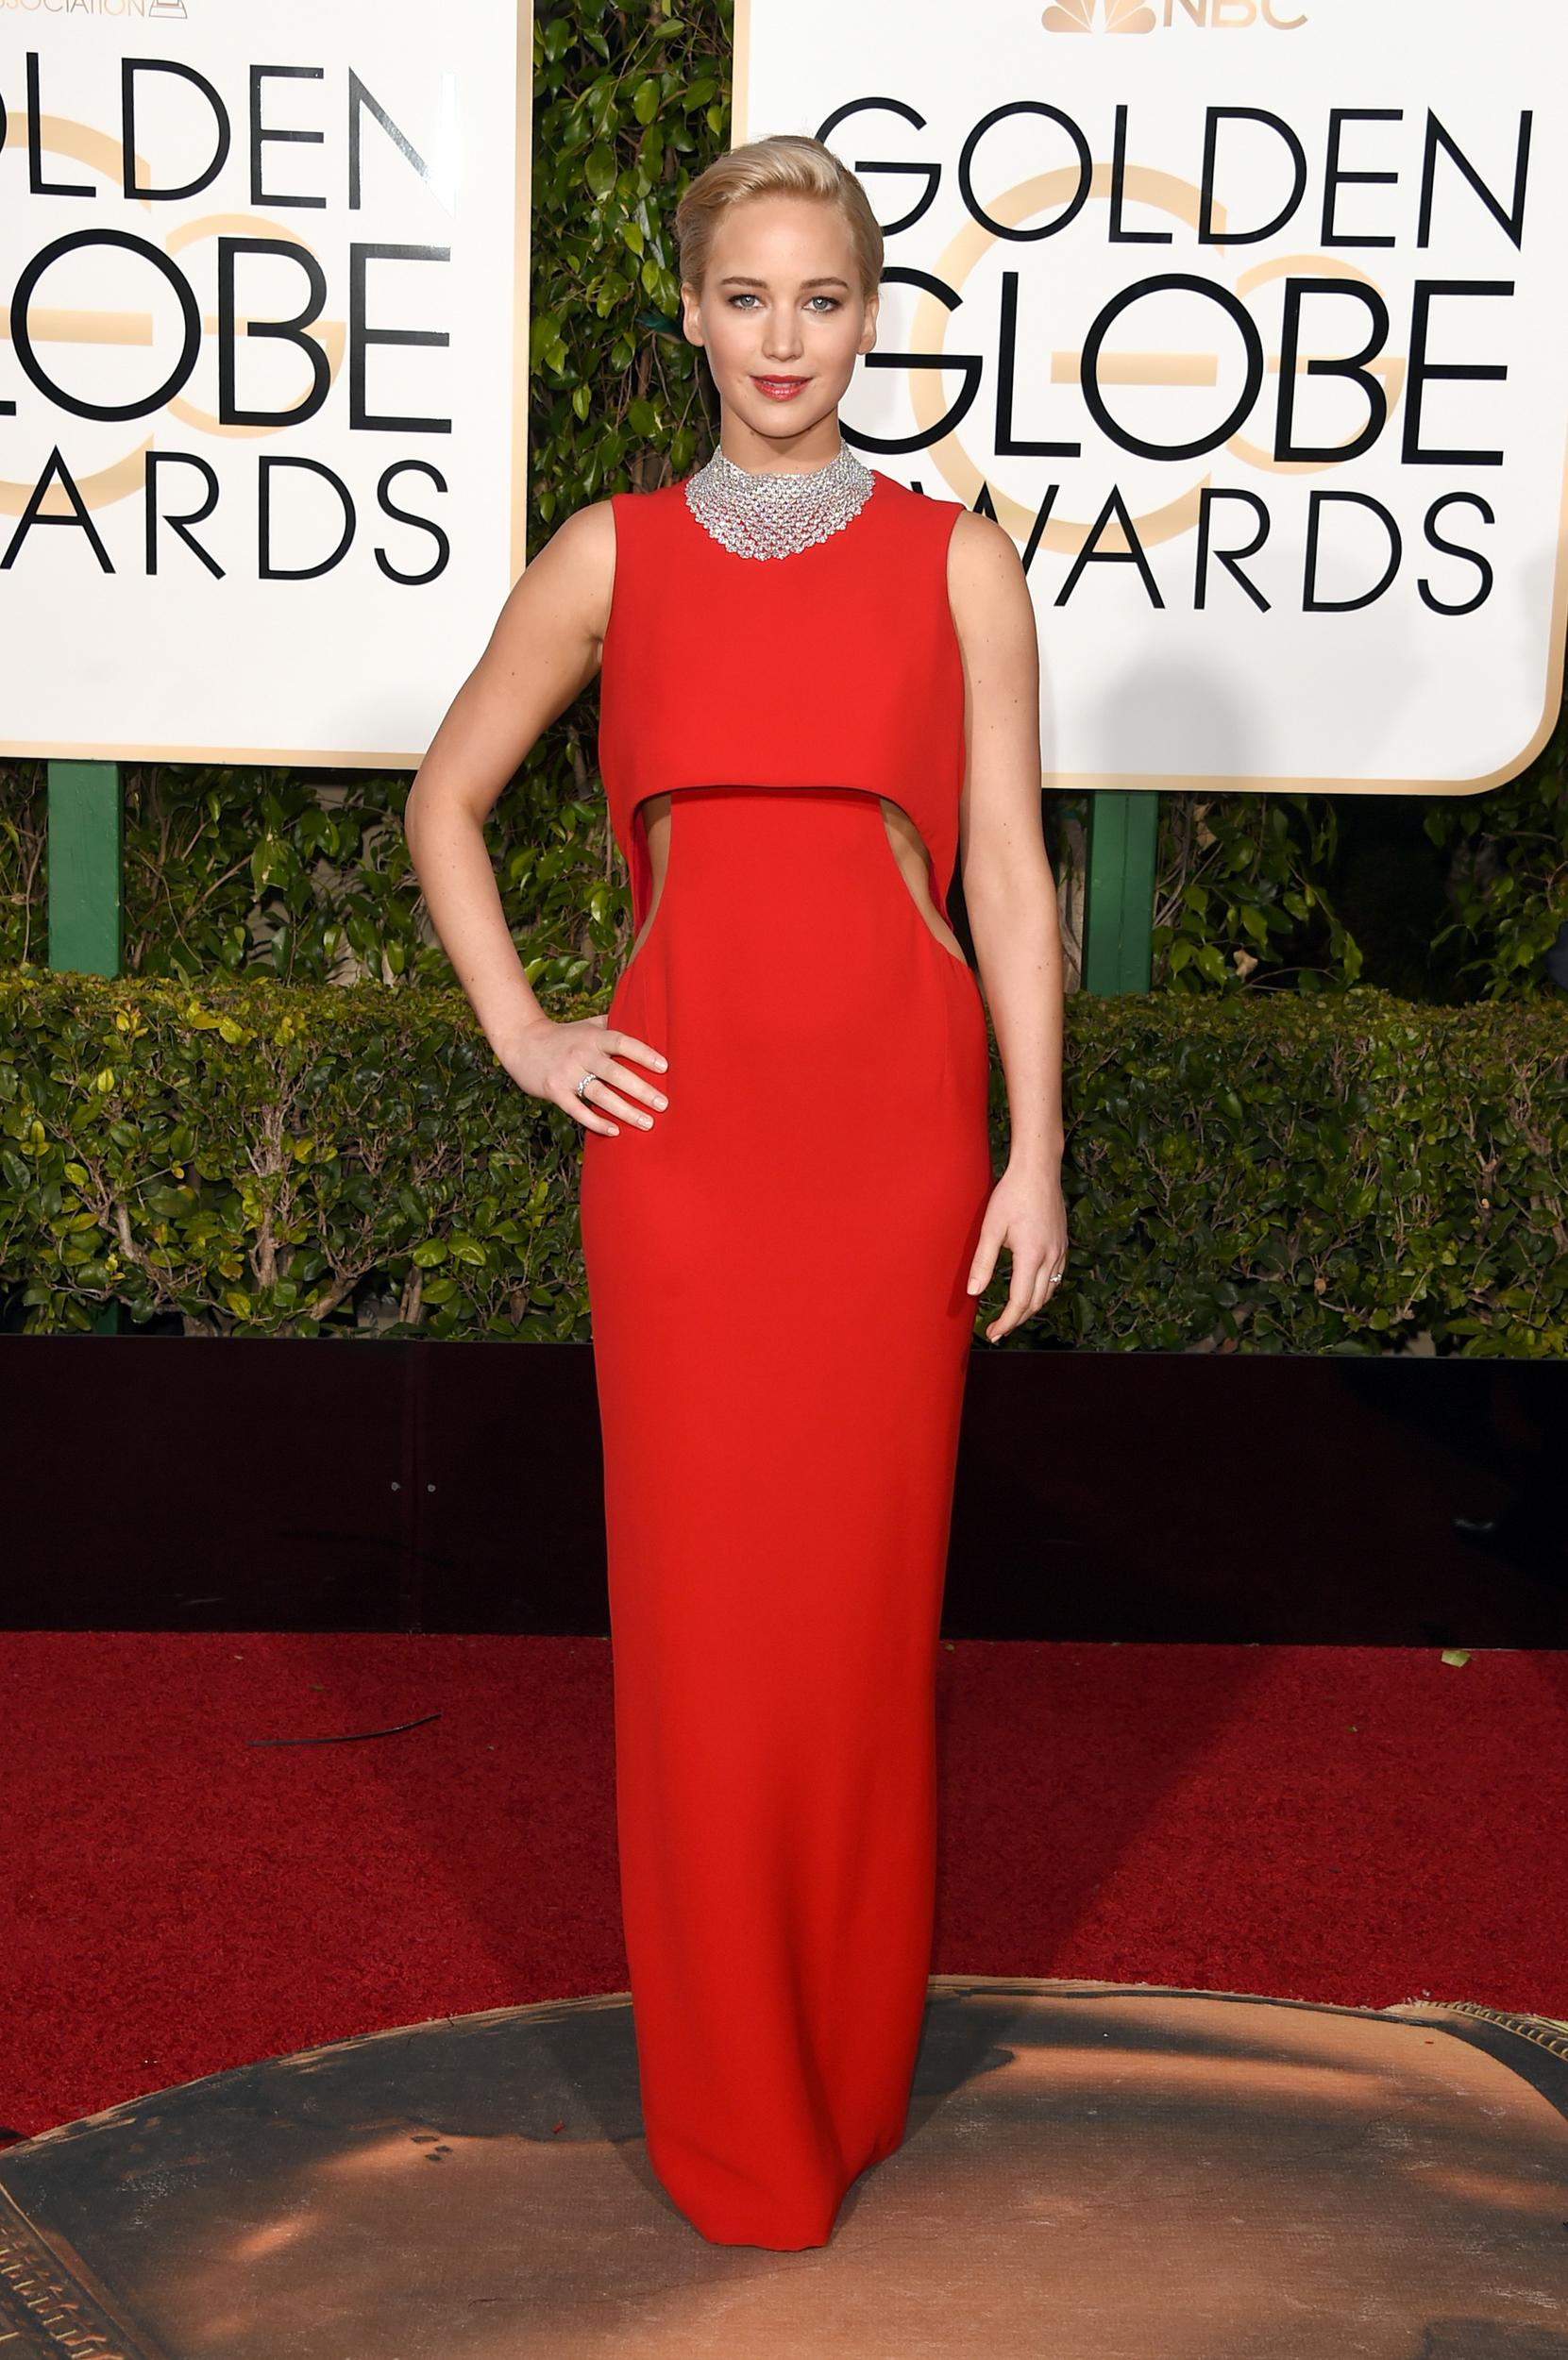 Jennifer Lawrence was an absolute knockout in a red Dior dress with sleek cutouts along the waist. She topped off her classic and glamorous look with a diamond choker, red lips and swept back locks. (Photo by Jason Merritt/Getty Images)